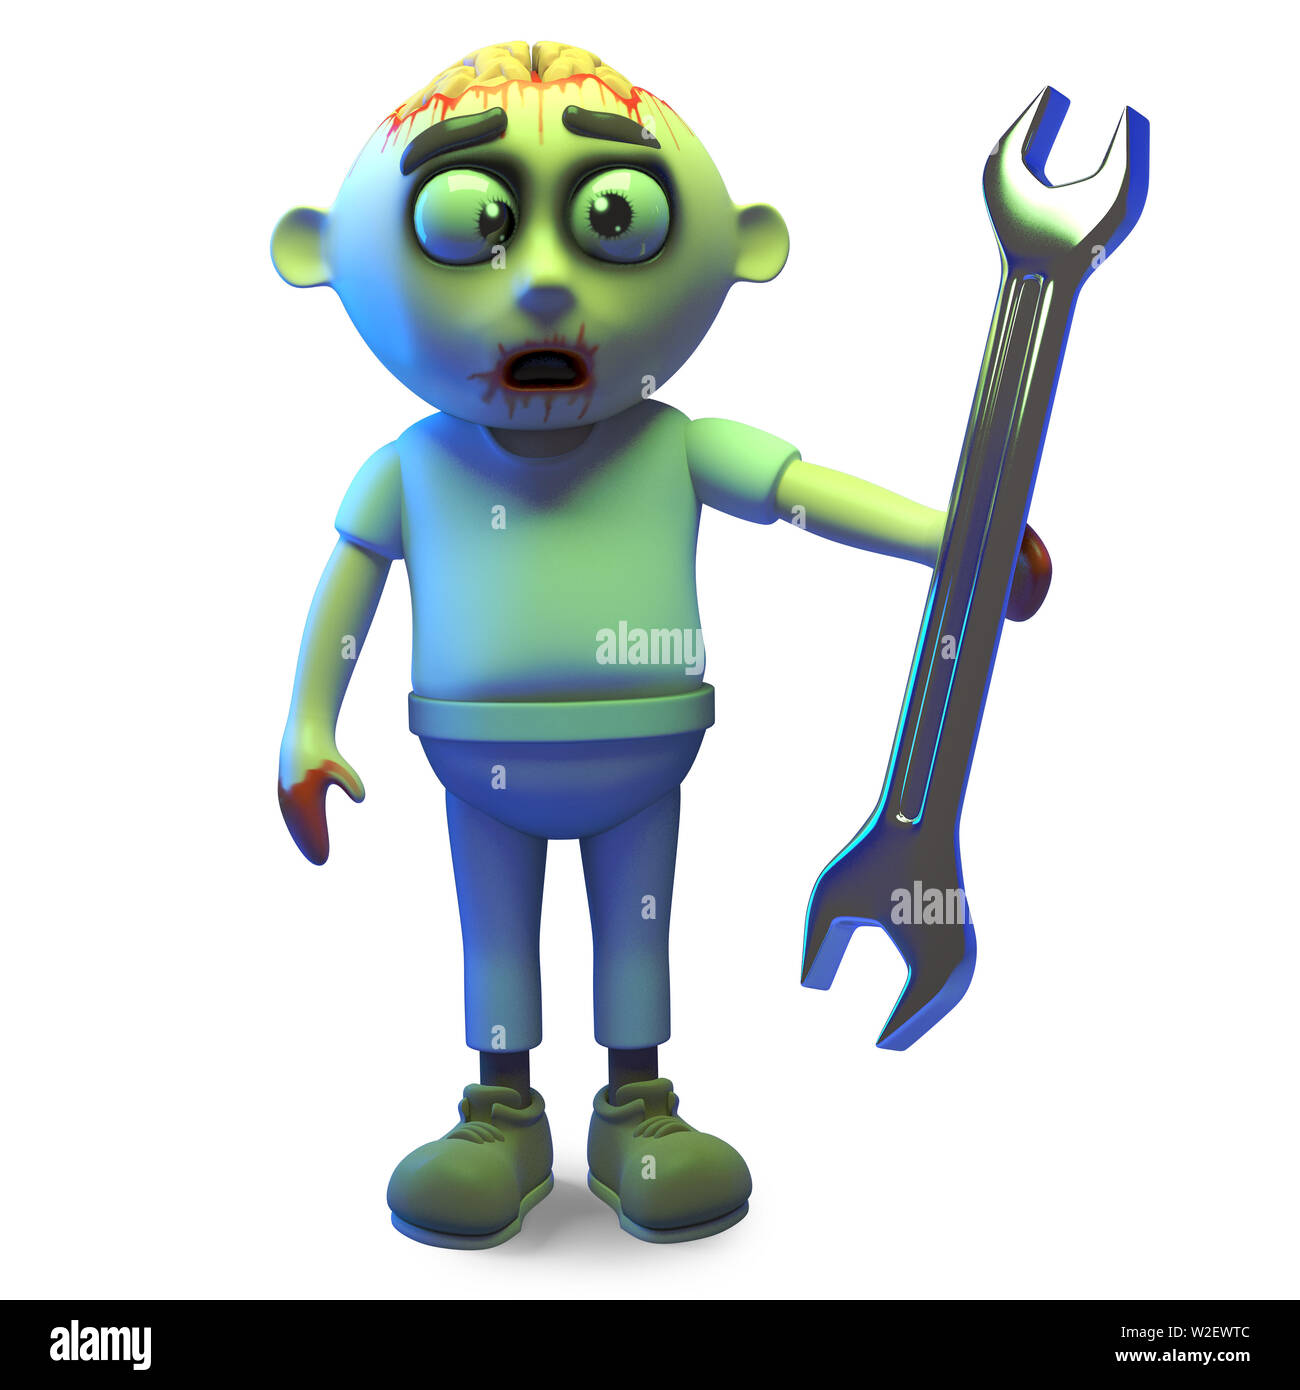 Silly zombie monster has a spanner and wants to help, 3d illustration render Stock Photo